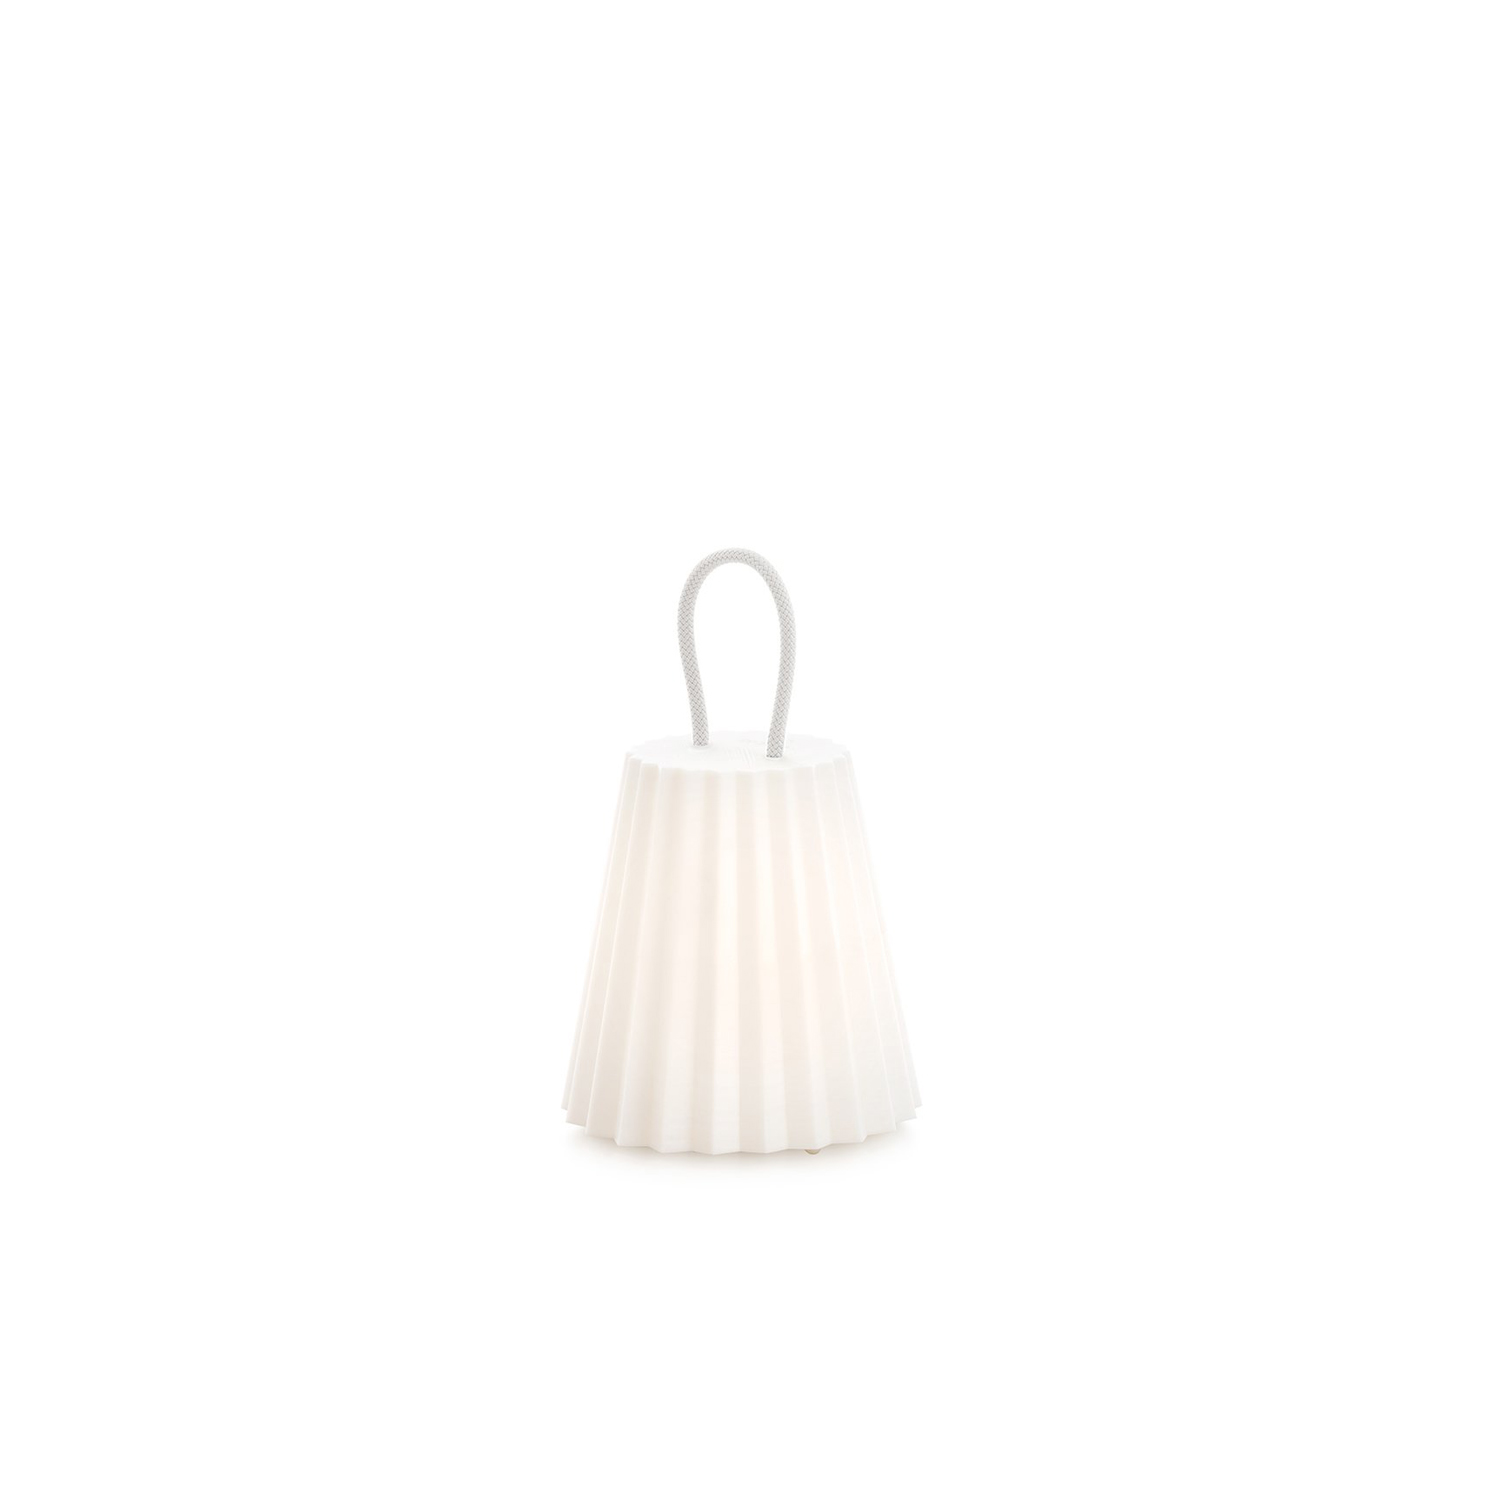 Plisy Portable Lamp - The Plisy nautical cord handle is available in several colors and can be used to move the lamp from place to place like a lantern or on the wrist. Charge it up at home and take it to the park, to the beach or for a night walk. This lamp is perfect if you do not have light sources in your outdoor area. Use the handle to hang it as a wall lamp or place it on its base as a floor light. Plisy is intended as a portable outdoor lamp, but you can also use it indoors. Use its base to set it near a dining table or reading corner, a hallway area or by the entrance to the house. Use it as an auxiliary table lamp inside the house, when you need to light up your outdoor area or take it with you to a night outing. The lamp base is available as a separate product in thermo-lacquered metal white or red. Please enquire us for further information.  7h Charge/10 h Light.   | Matter of Stuff